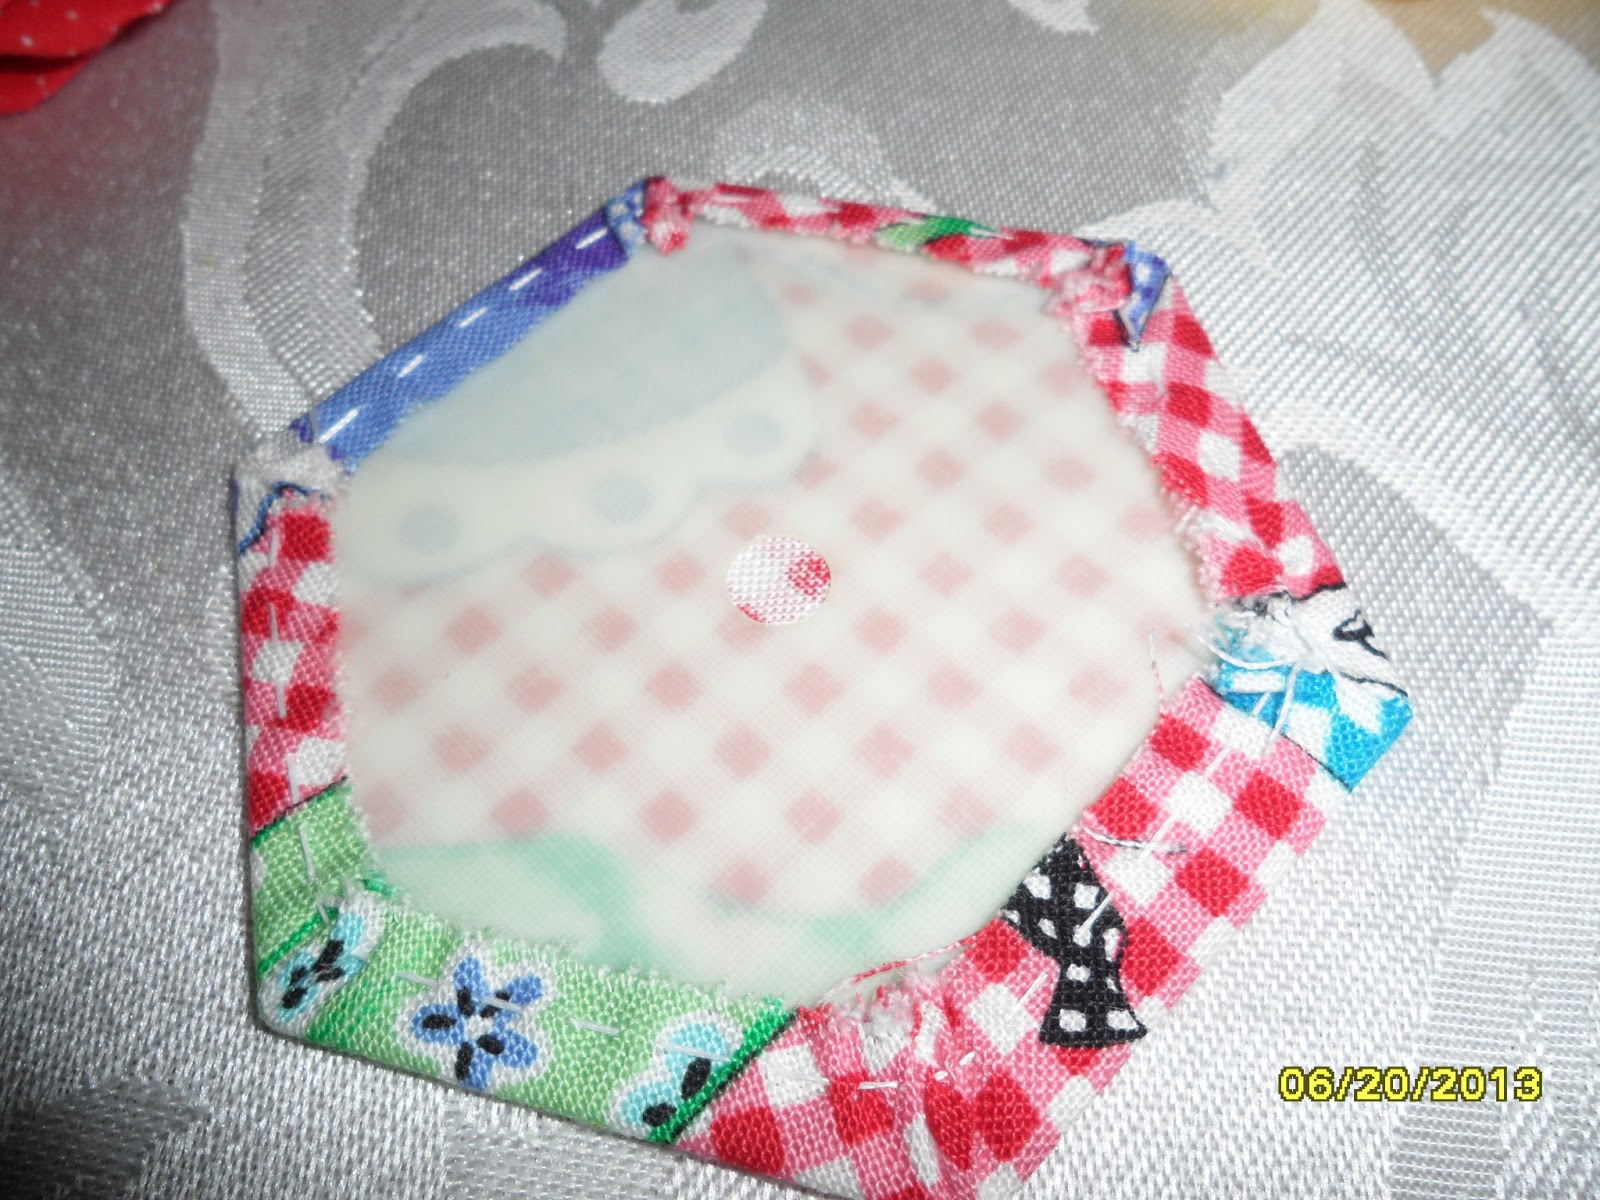 In sewtopia the hexagon english paper piecingplastic piecing the plastic template backing the fabric hexi a hole in the middle can be used to pin through to stabilize the fabric as you work and is used to pull the maxwellsz